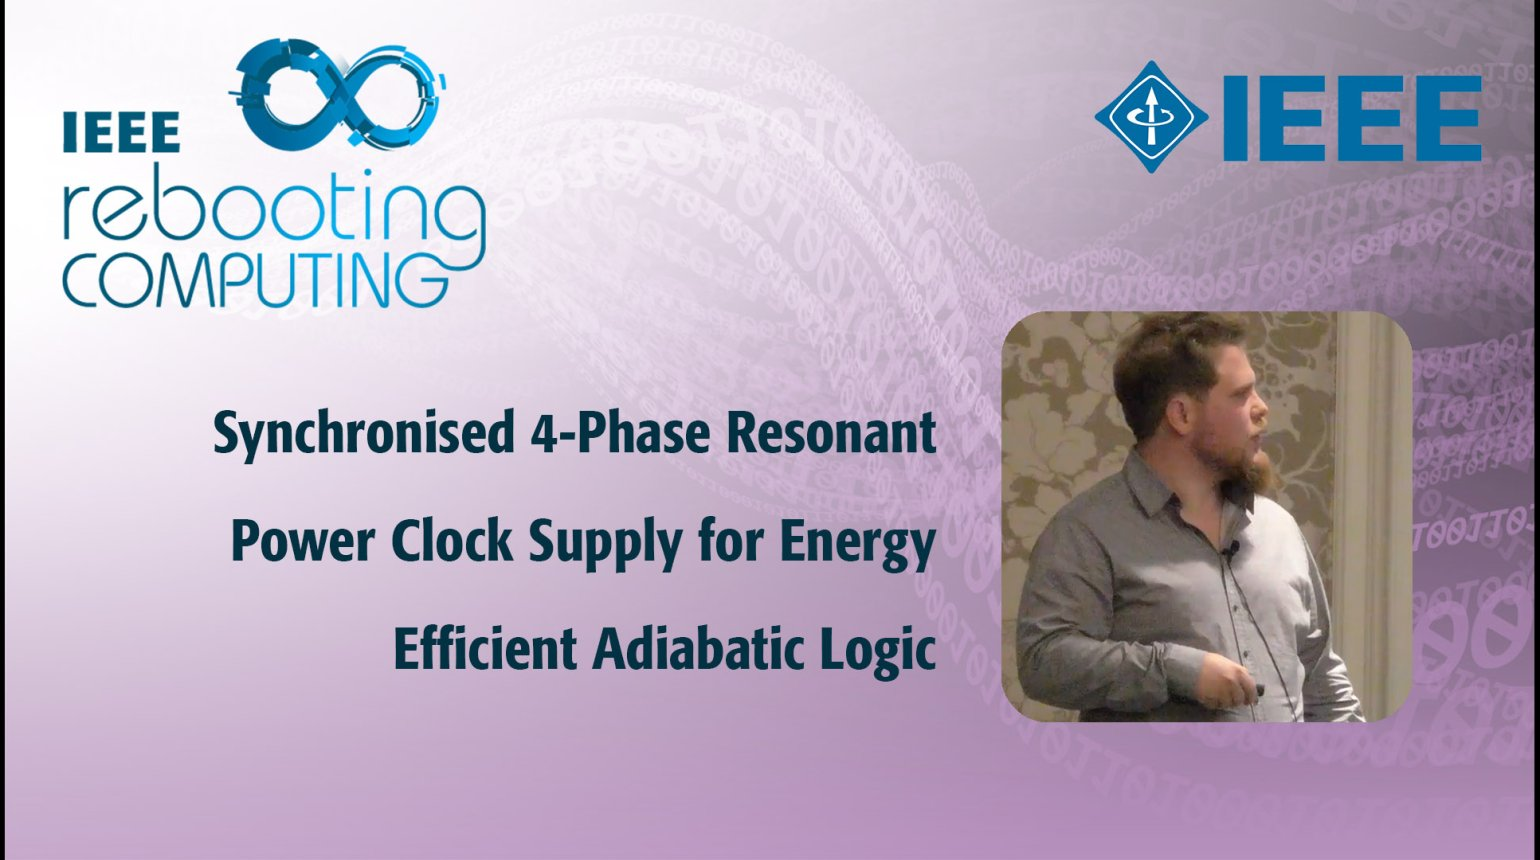 Synchronised 4-Phase Resonant Power Clock Supply for Energy Efficient Adiabatic Logic: IEEE Rebooting Computing 2017